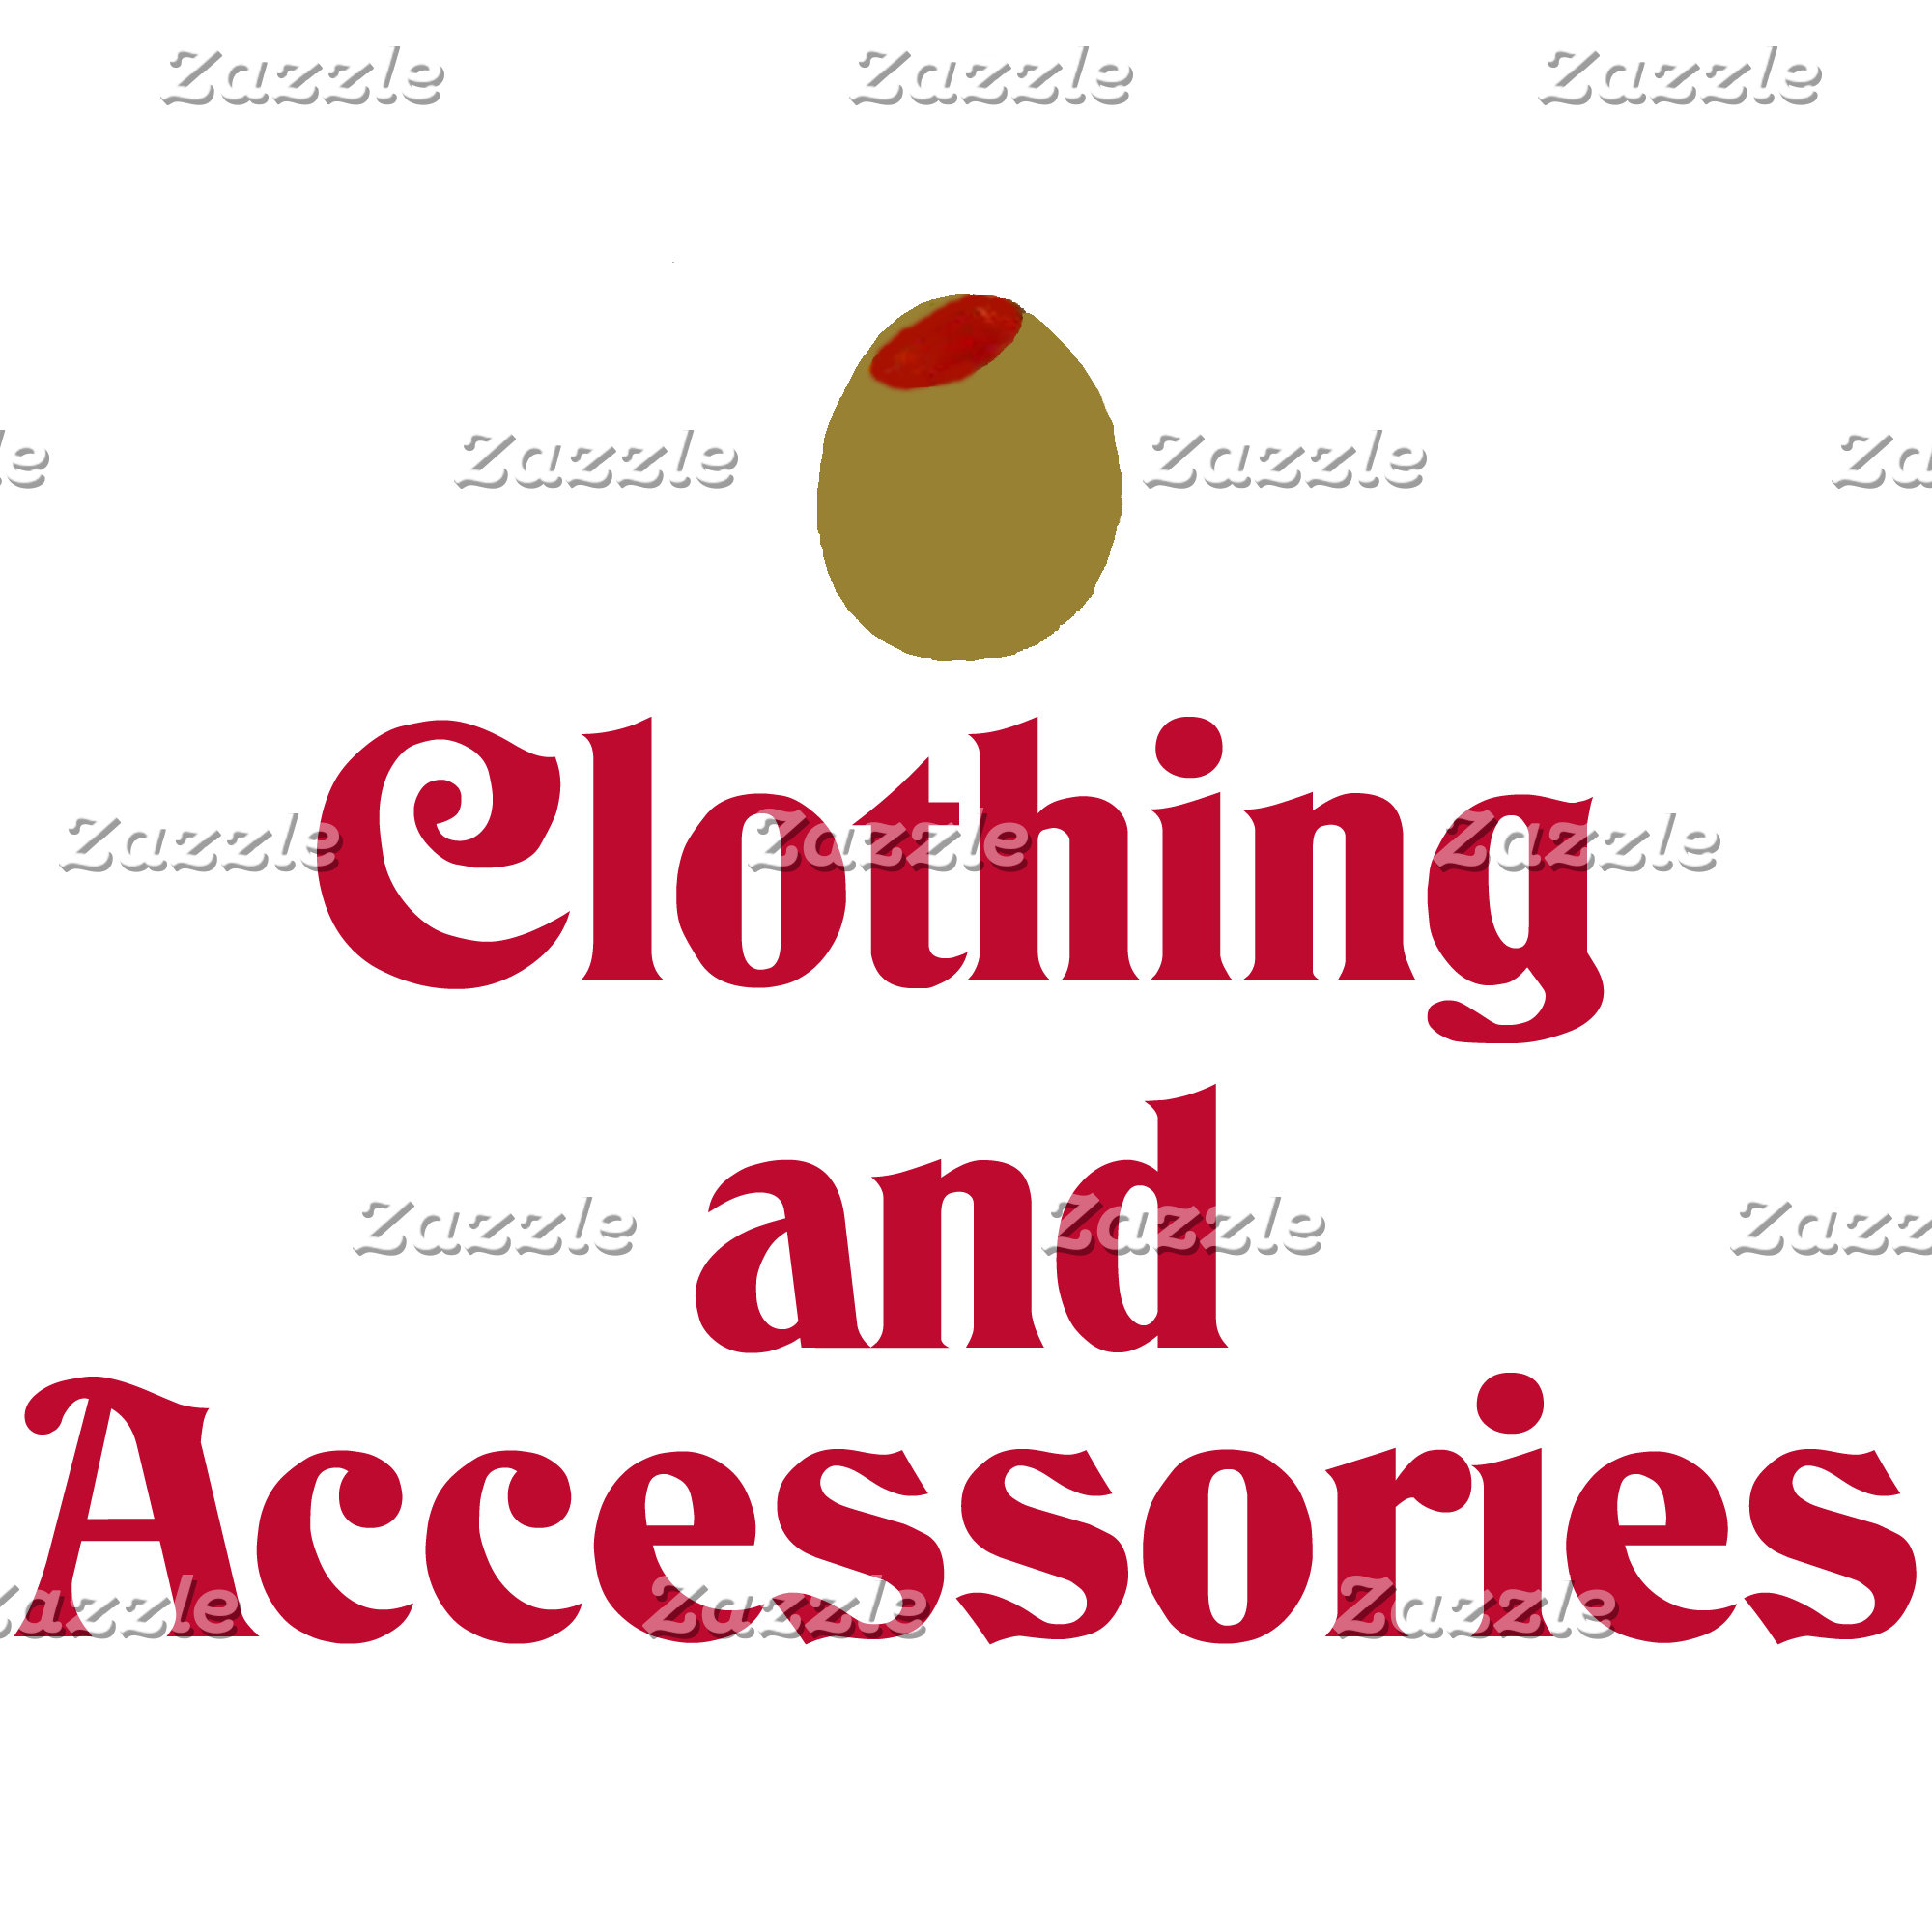 Olive (I Love) Clothing and Accessories